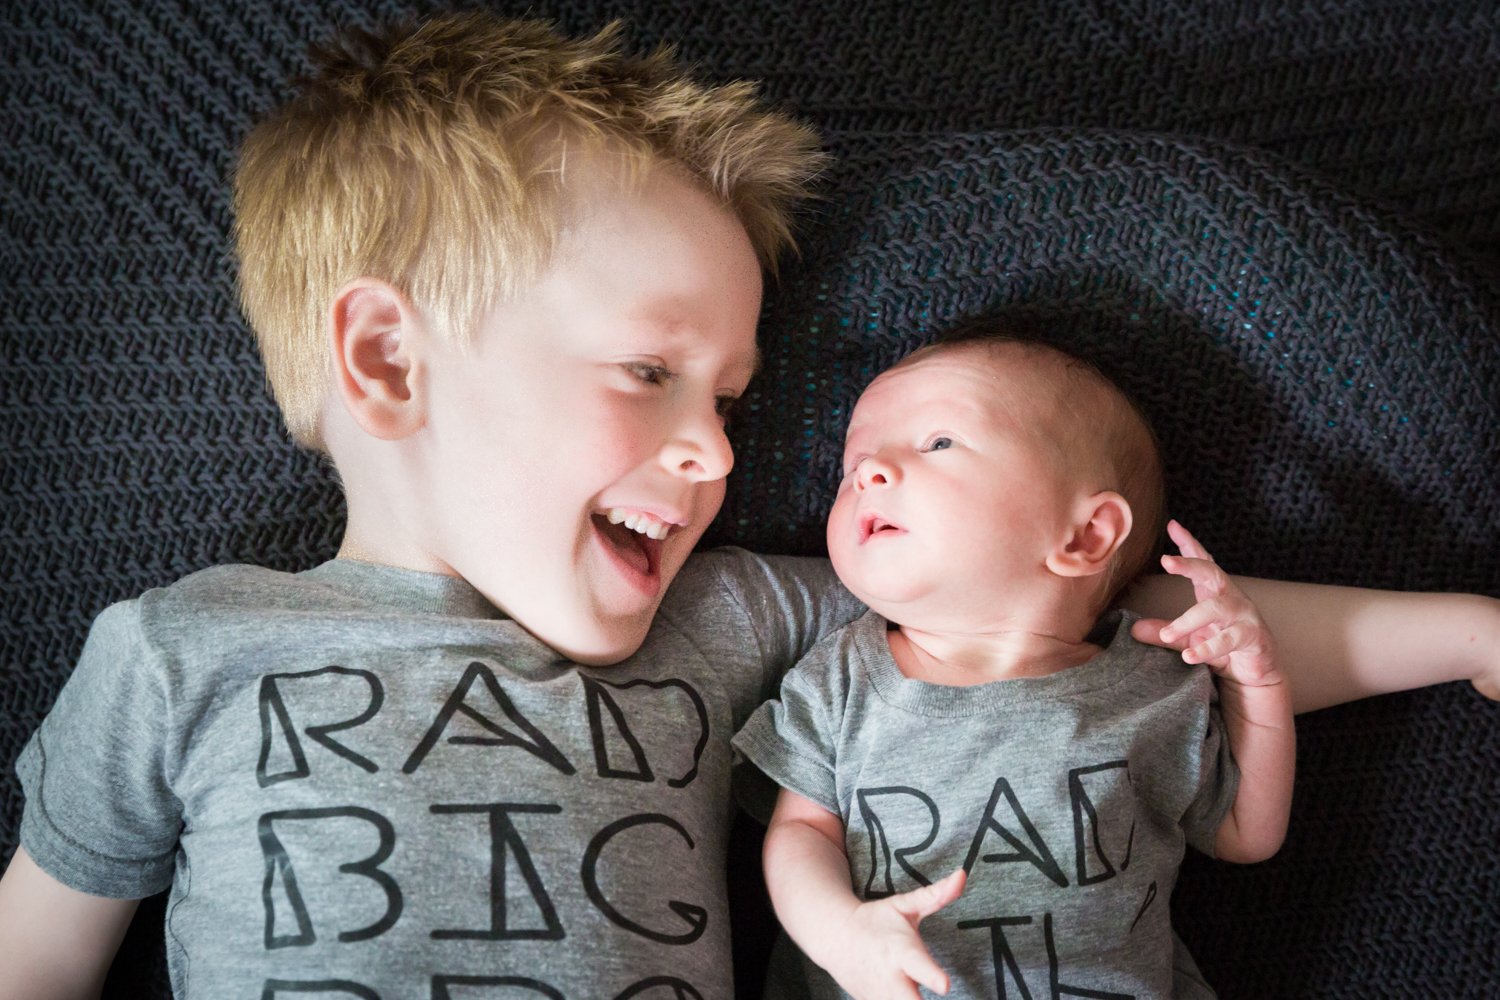 Little boy looking at newborn baby and wearing similar t-shirts